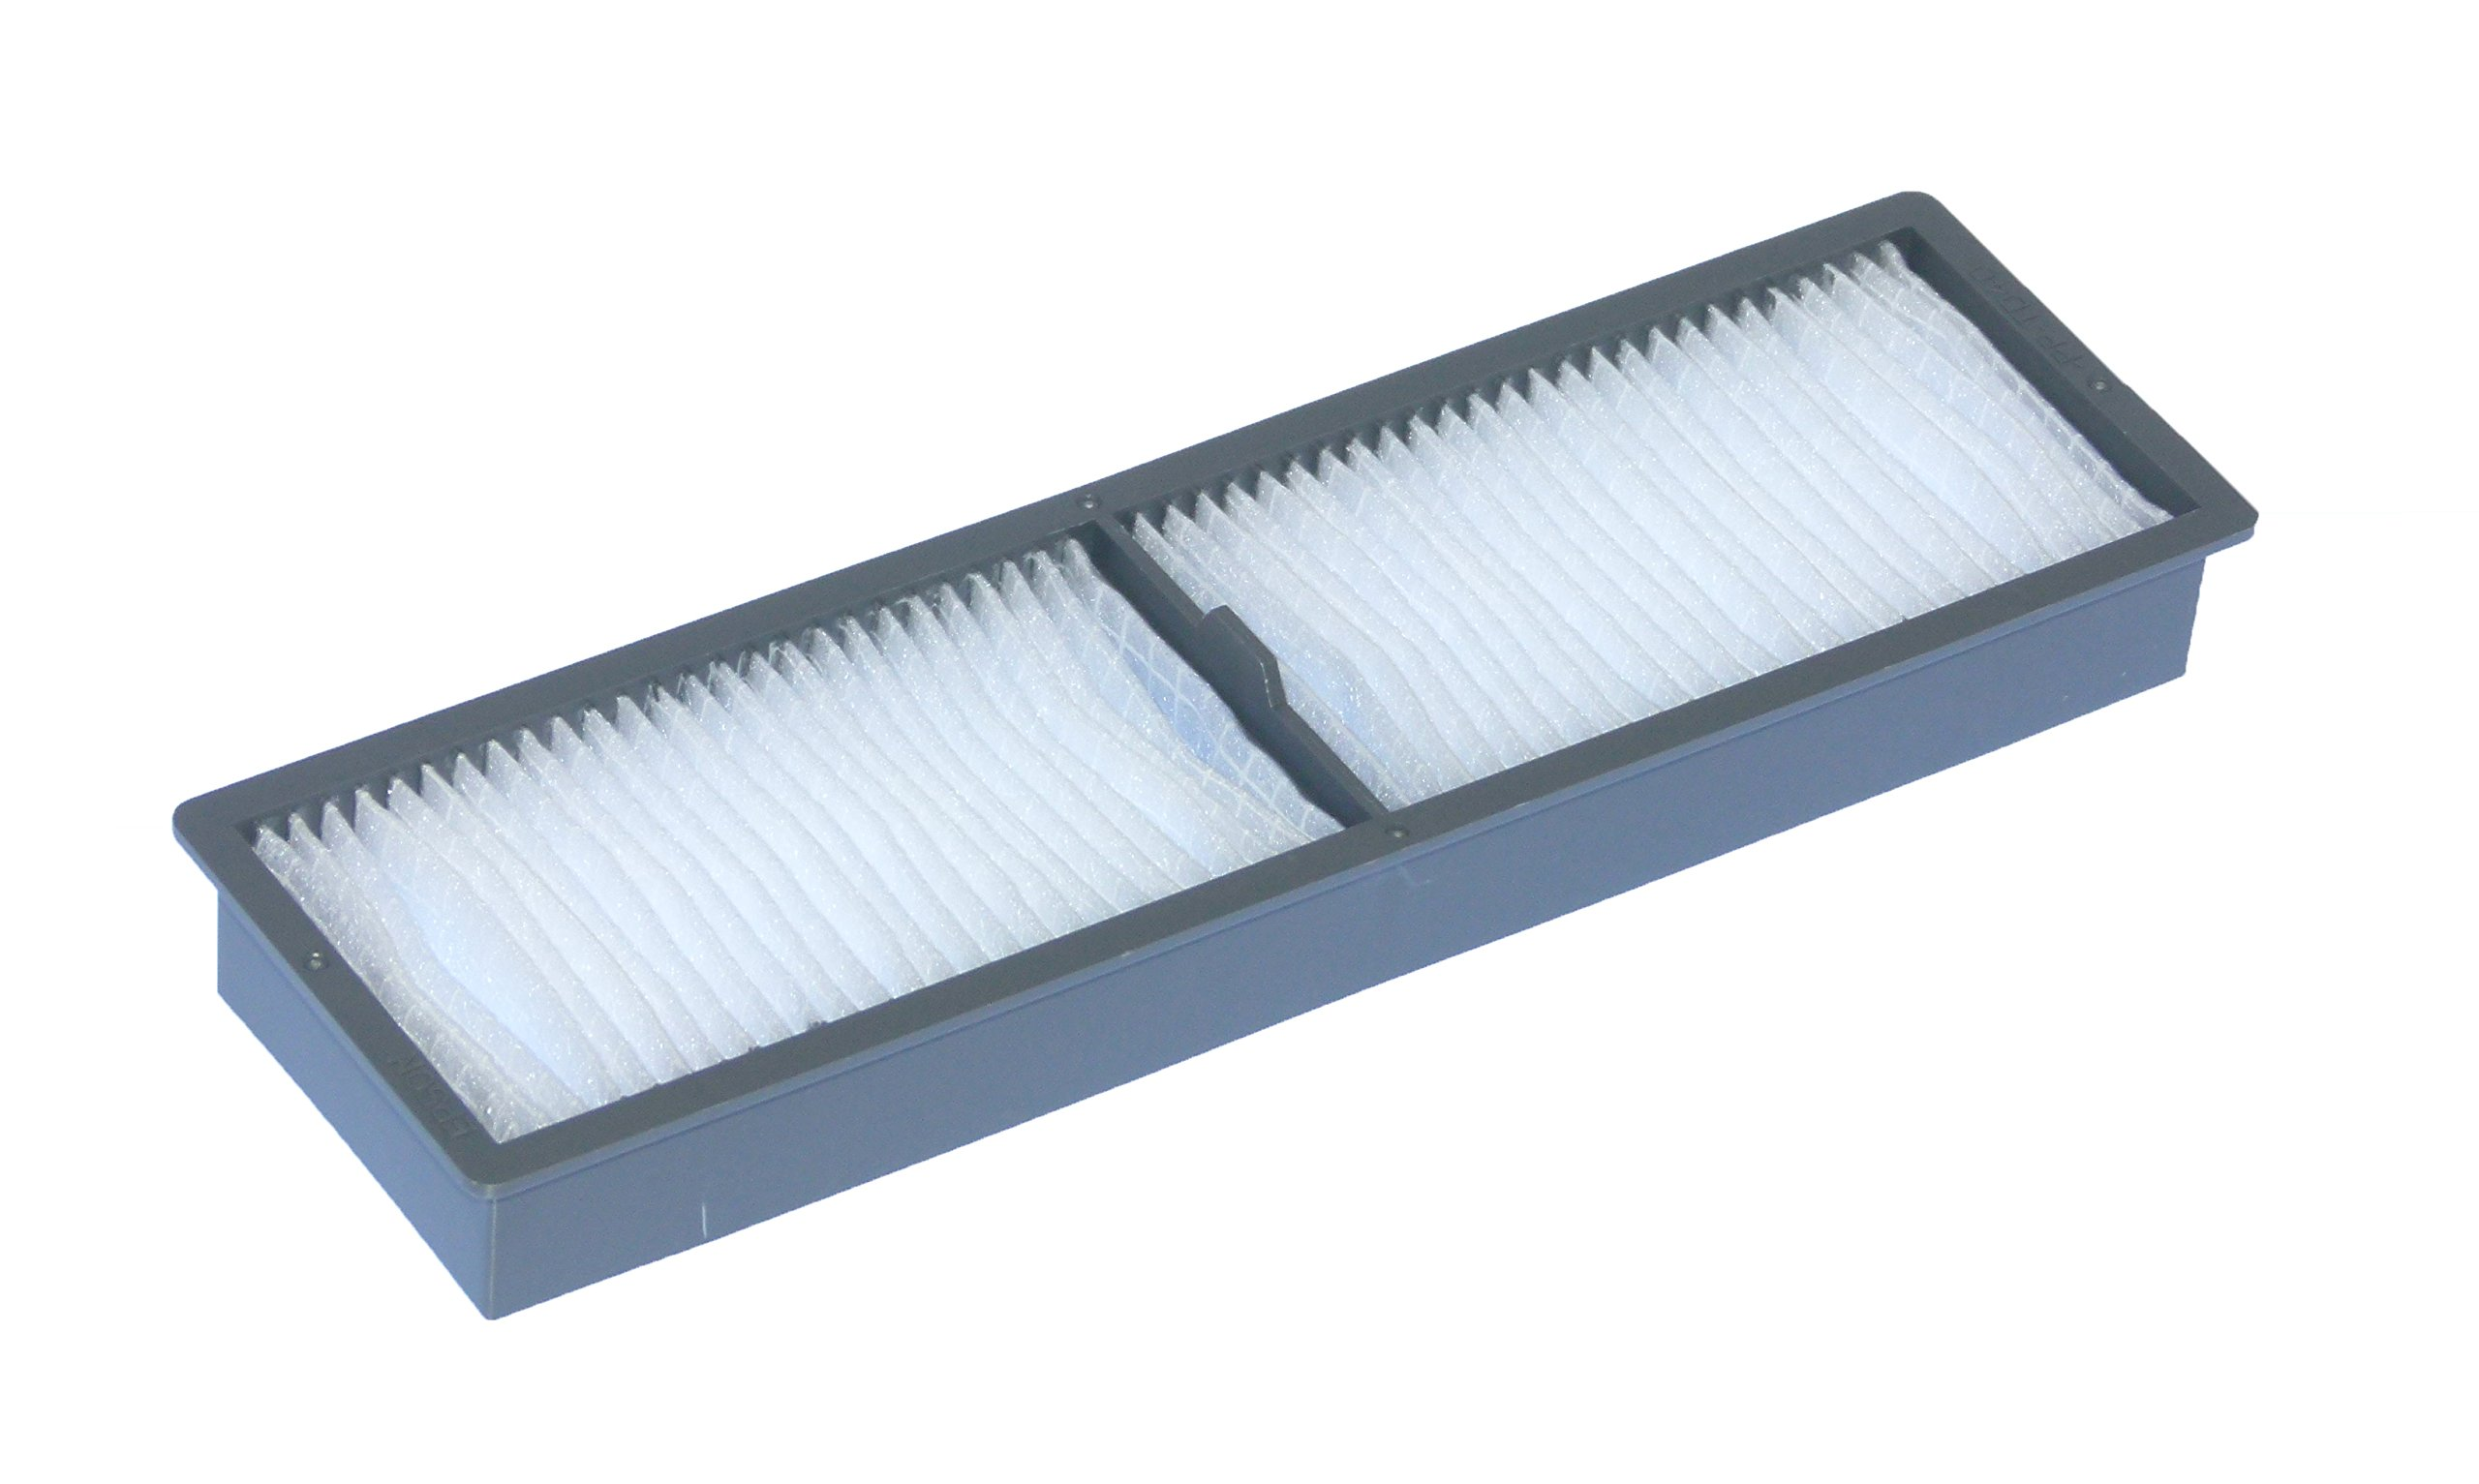 NEW OEM Epson Projector Air Filter For Epson PowerLite 4650, 4750W, 4855WU, PowerLite Pro Cinema 4855WU by Epson